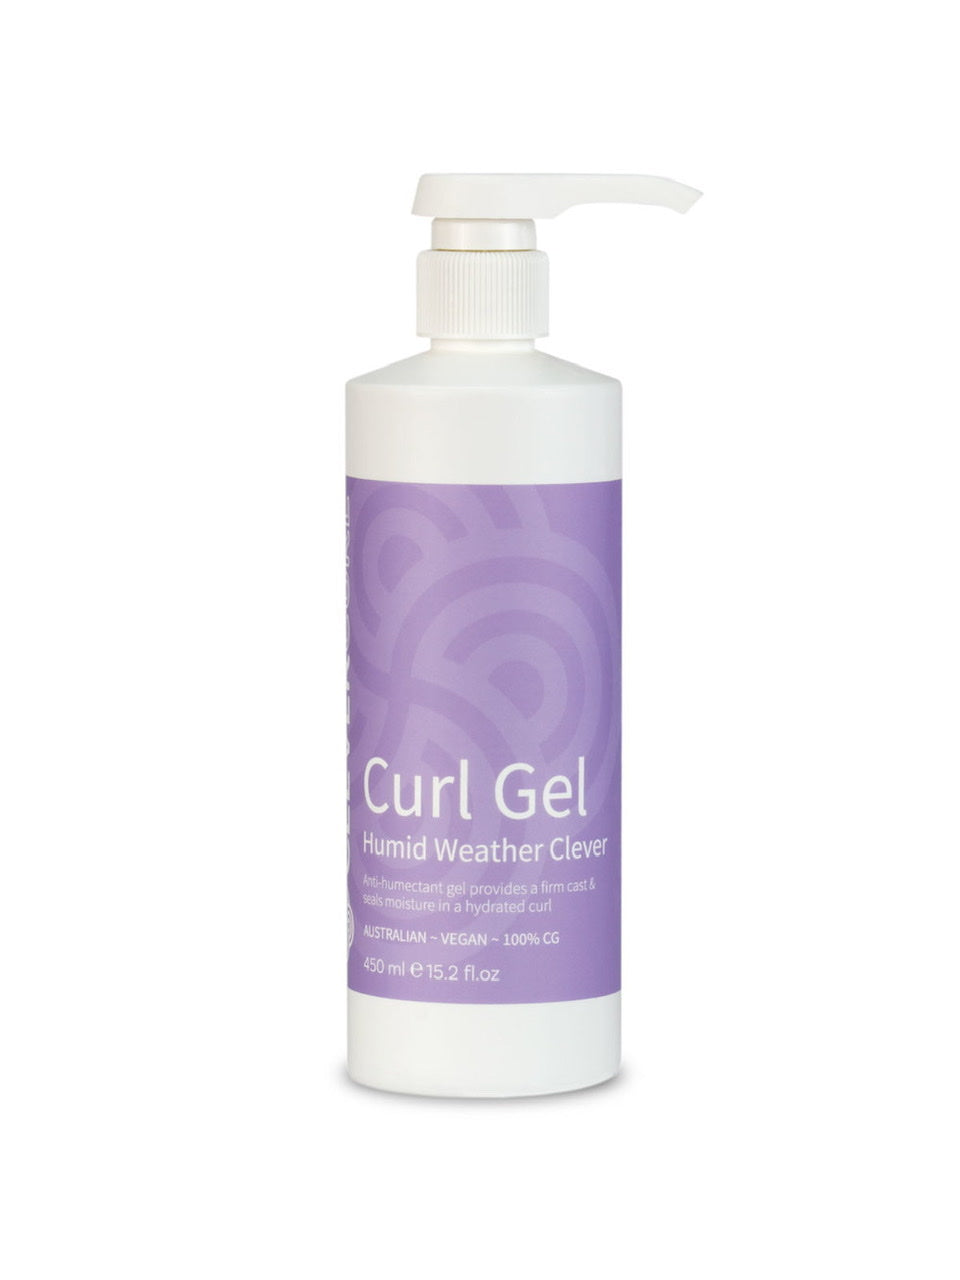 Clever Curl Humid Weather Clever Gel 450ml & 1L - Harlequin Hair